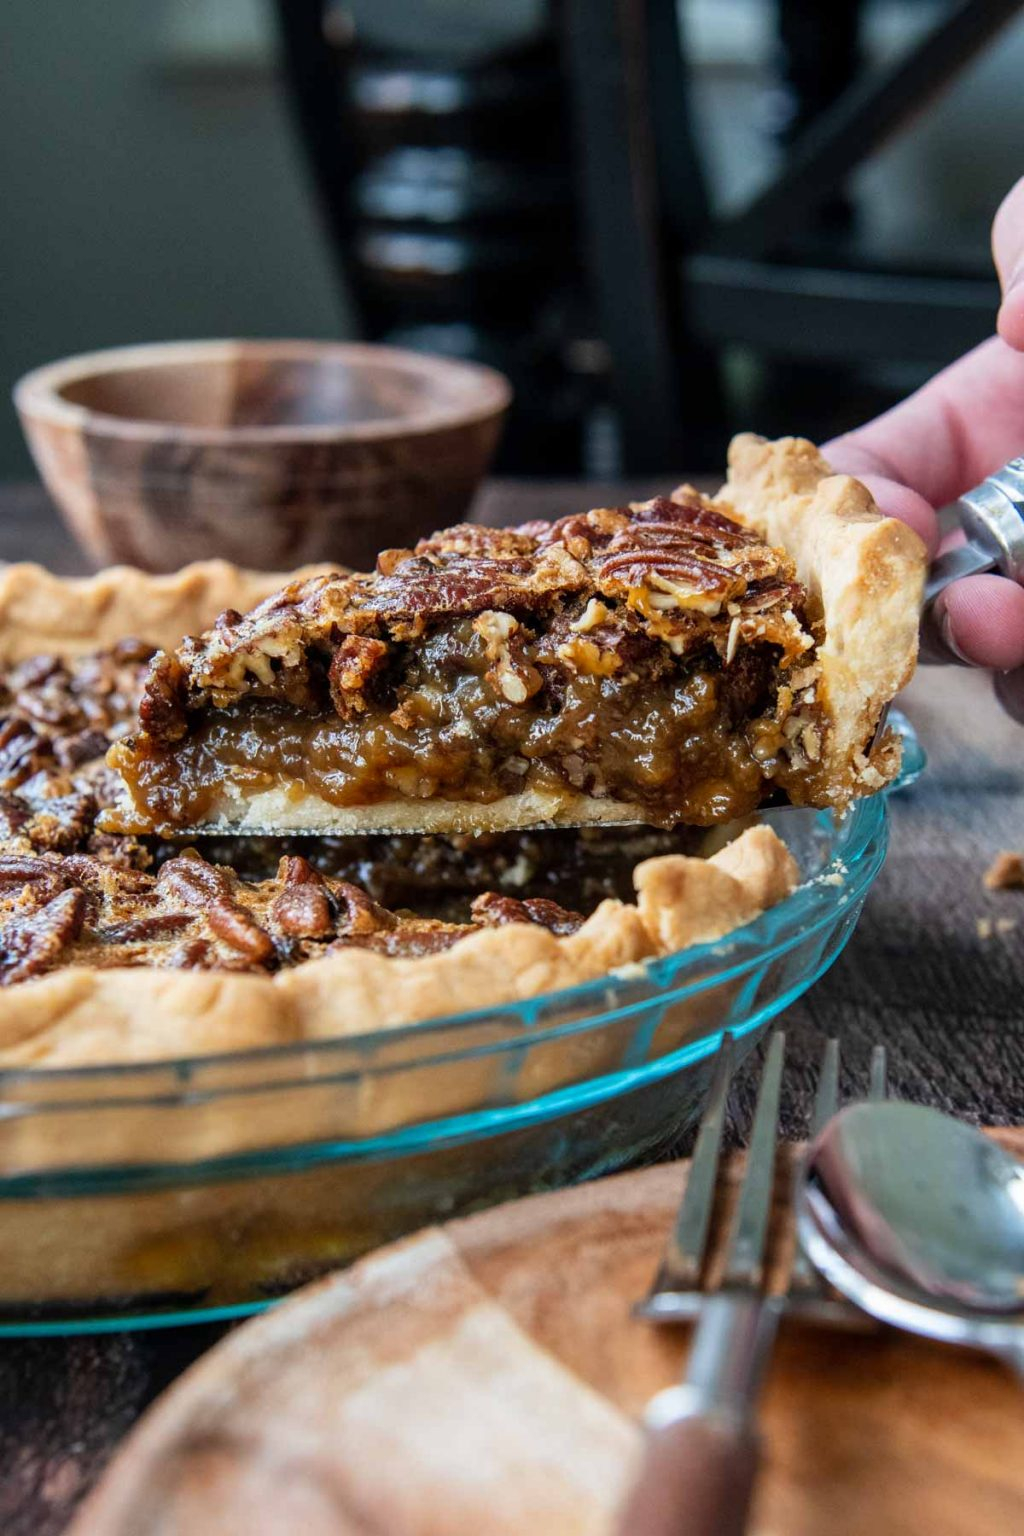 a piece of pecan pie being lifted out of a pie plate